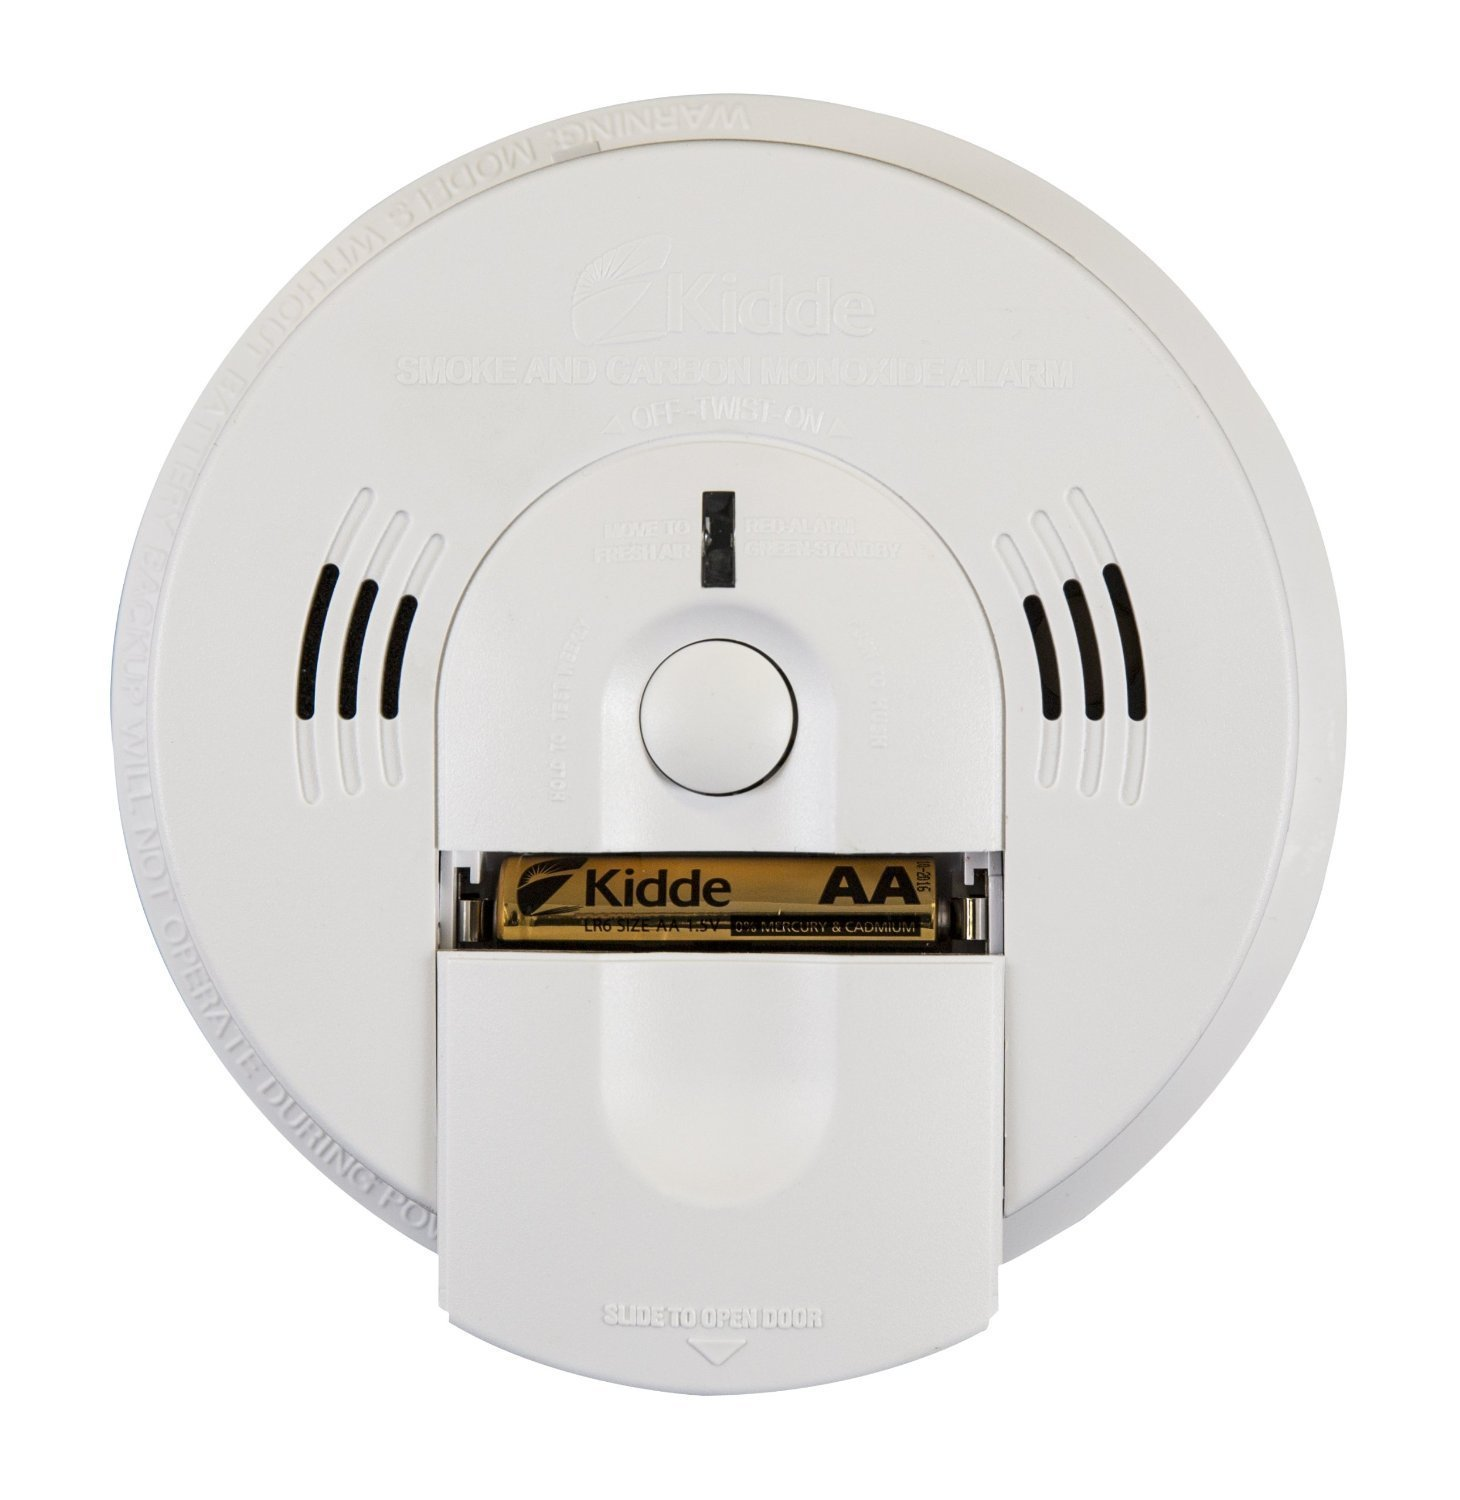 Kidde KN-COSM-B Battery-Operated Combination Carbon Monoxide and Smoke Alarm with Talking Alarm *4-Pack*